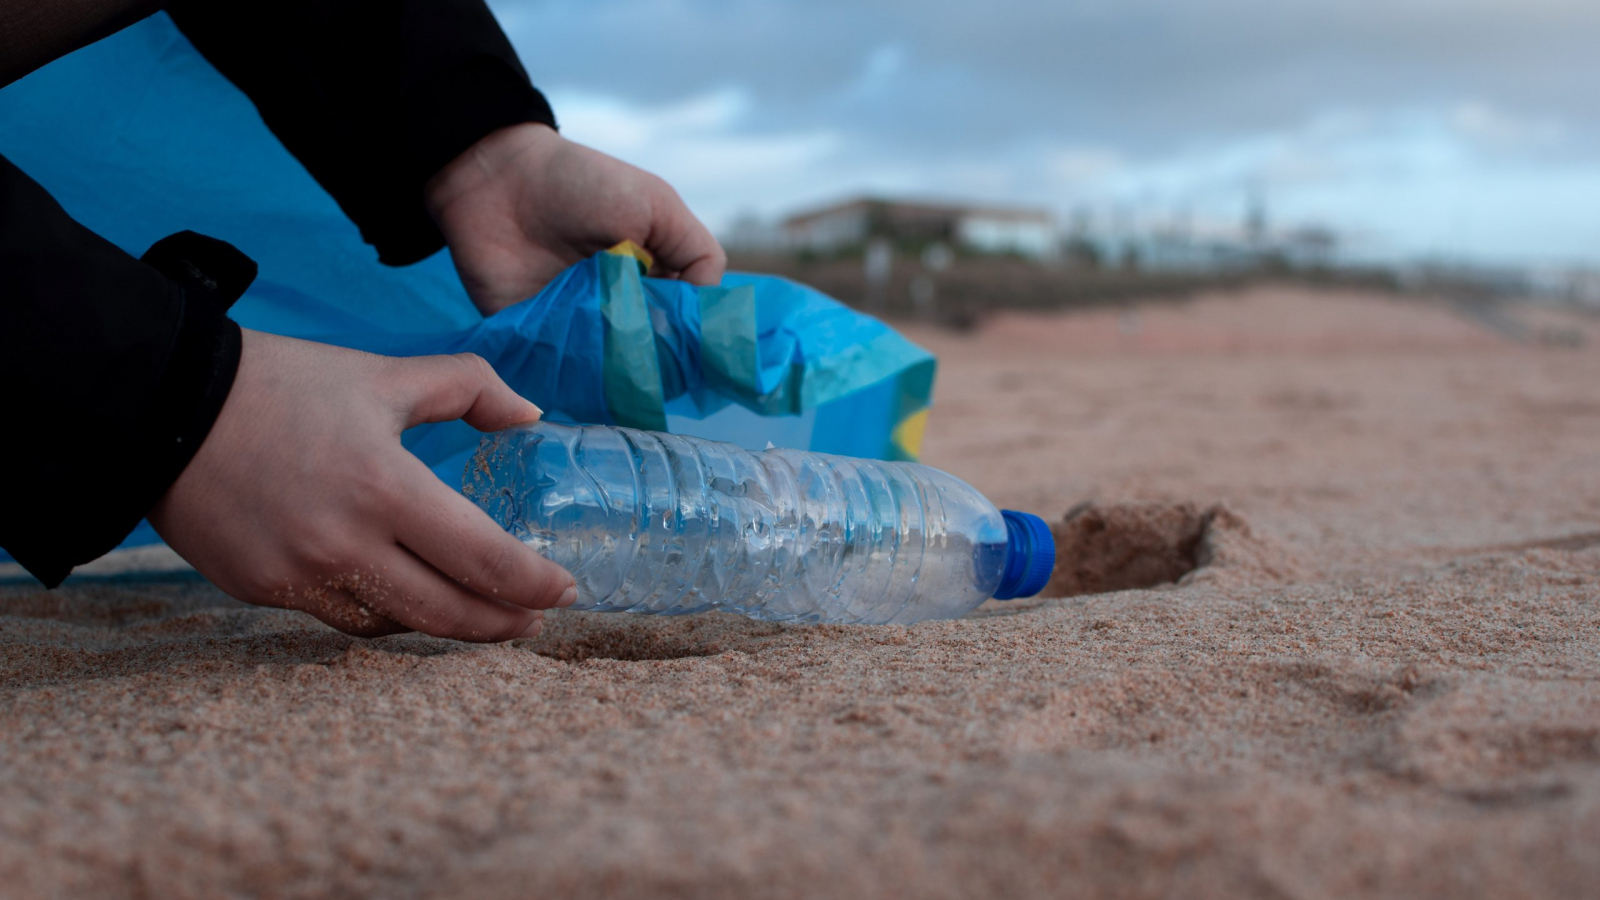 person-holding-clear-plastic-bottle-3480494